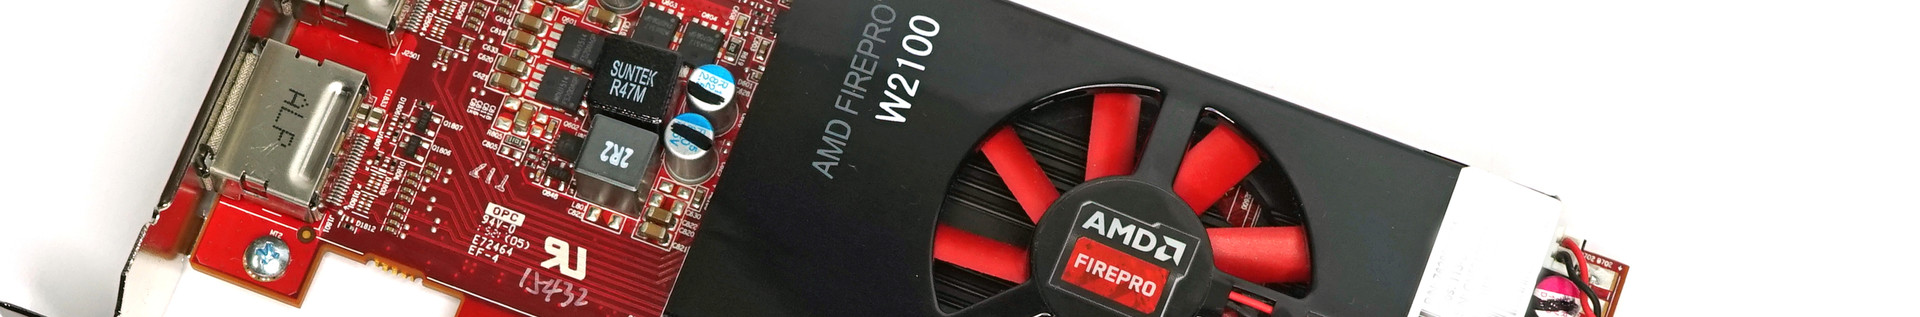 AMD FirePro W2100 and FirePro W4100 Review - NotebookCheck